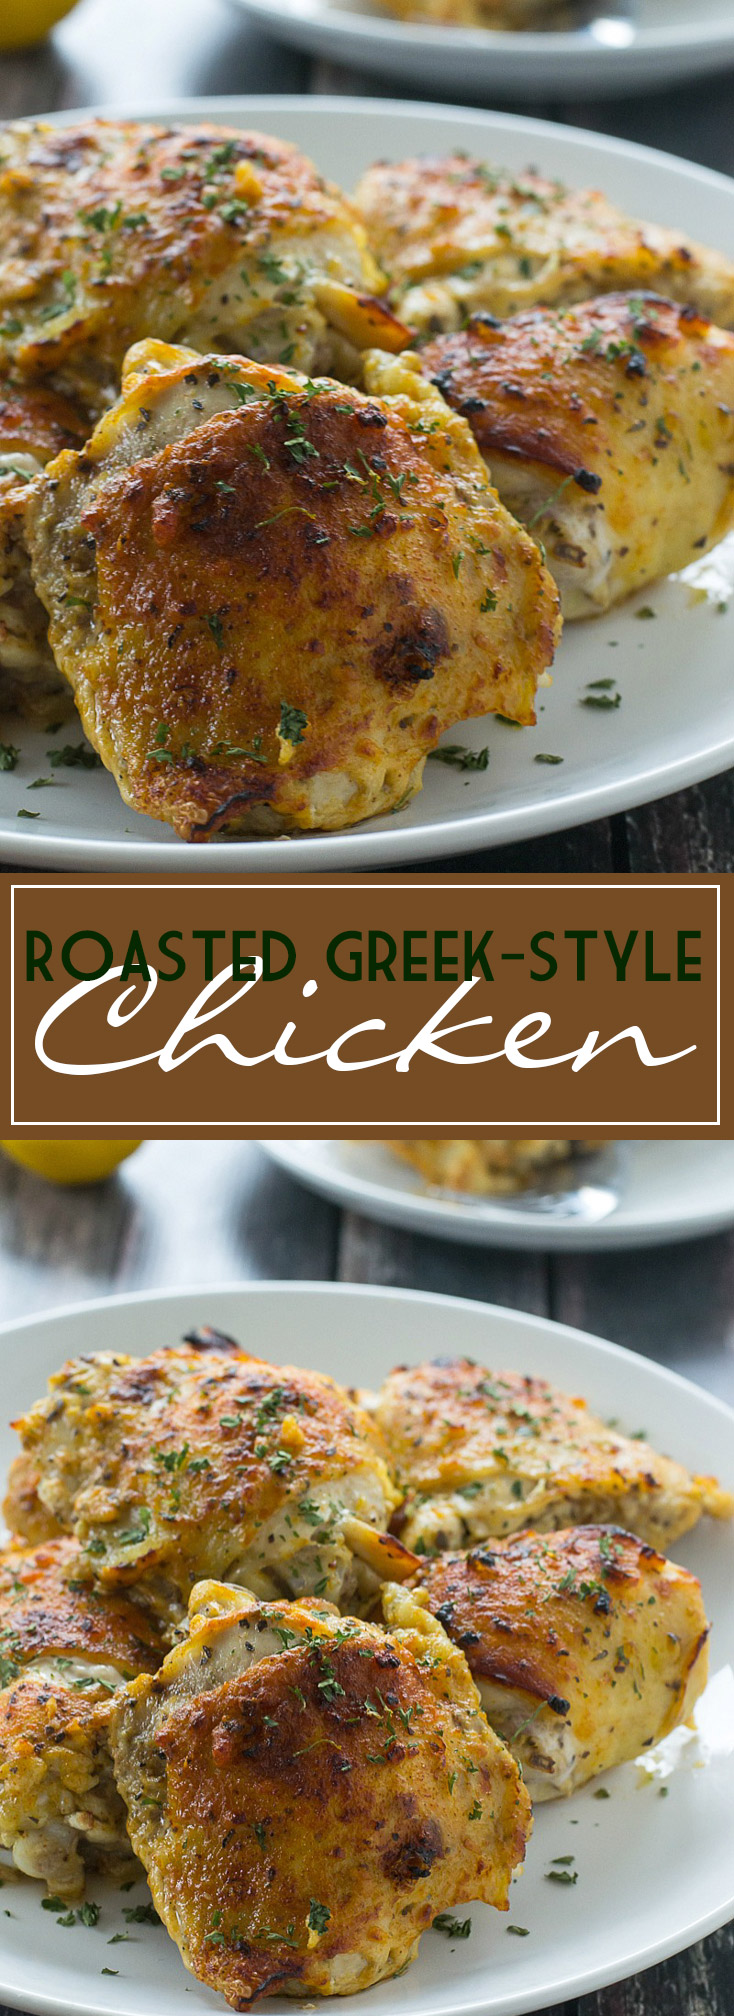 Roasted Greek-Style Chicken | www.motherthyme.com